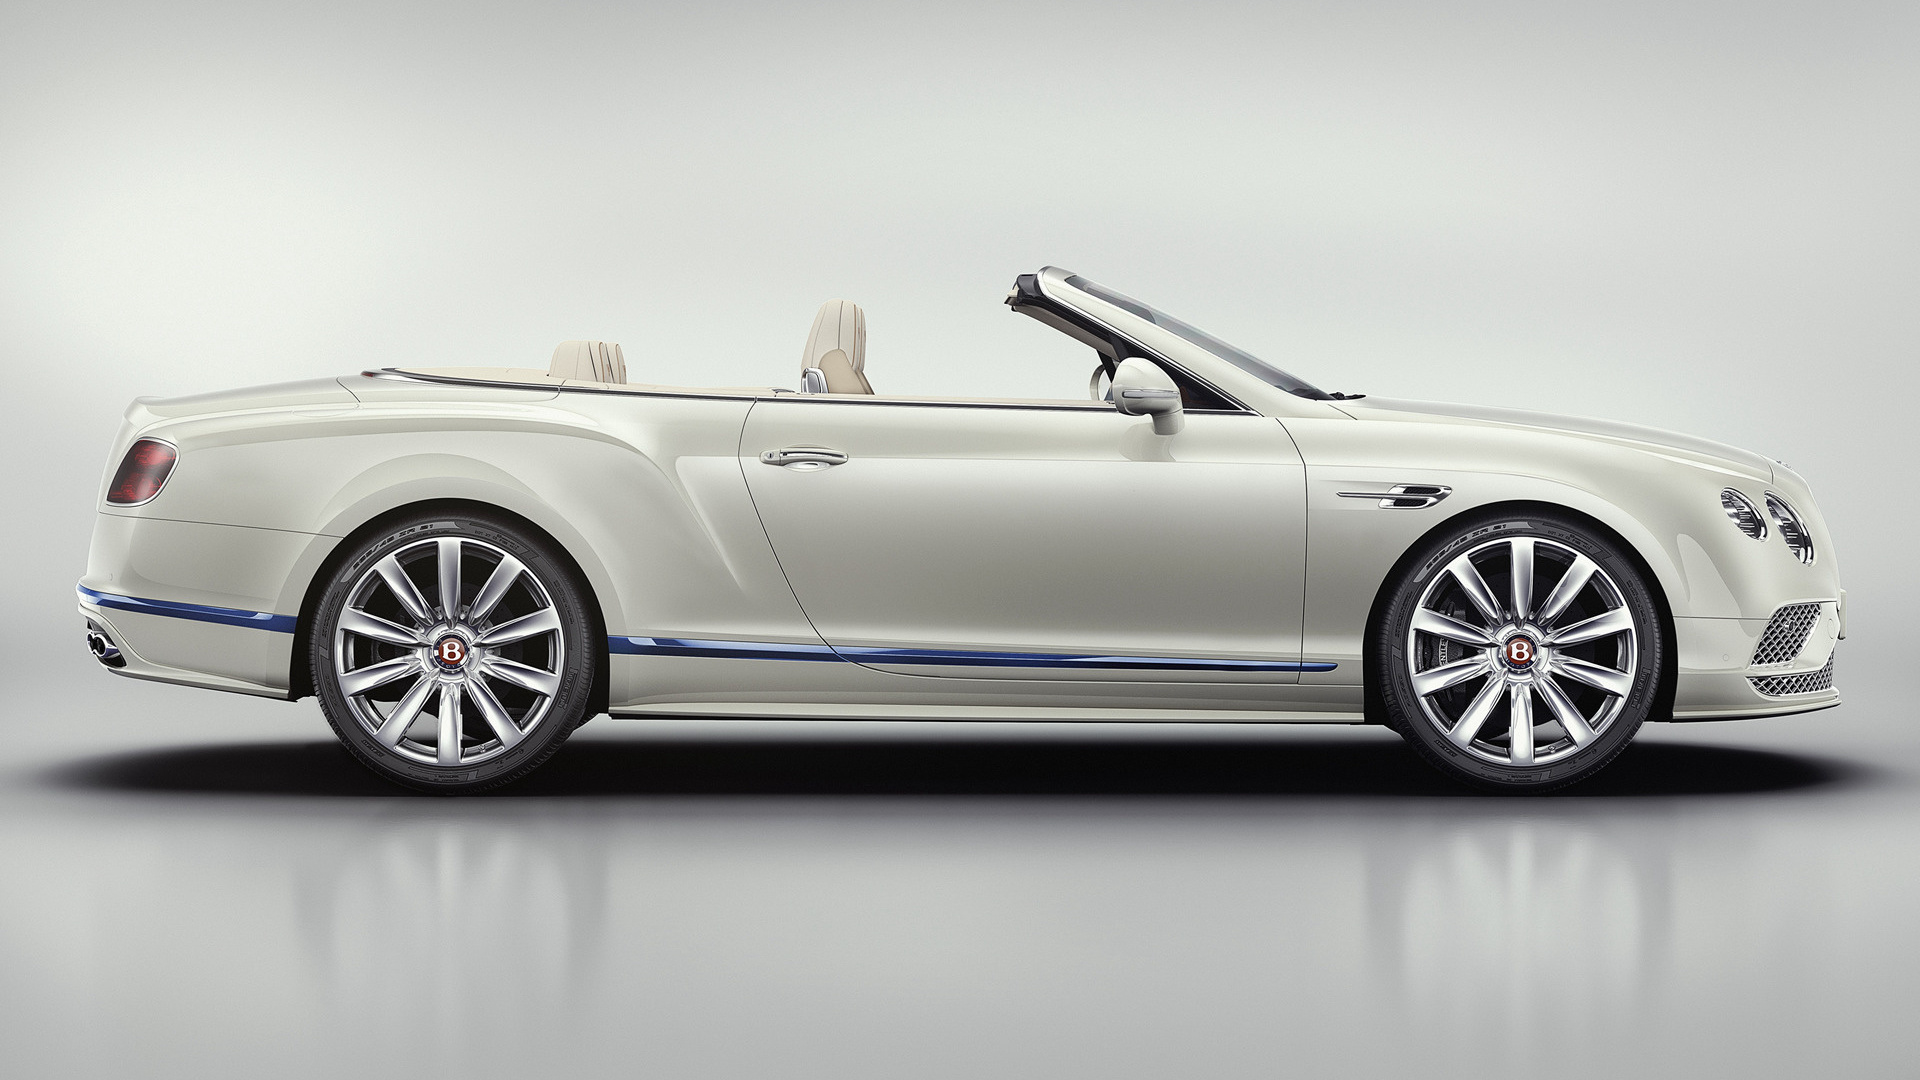 2017 Bentley Continental Gt V8 Convertible Galene Edition